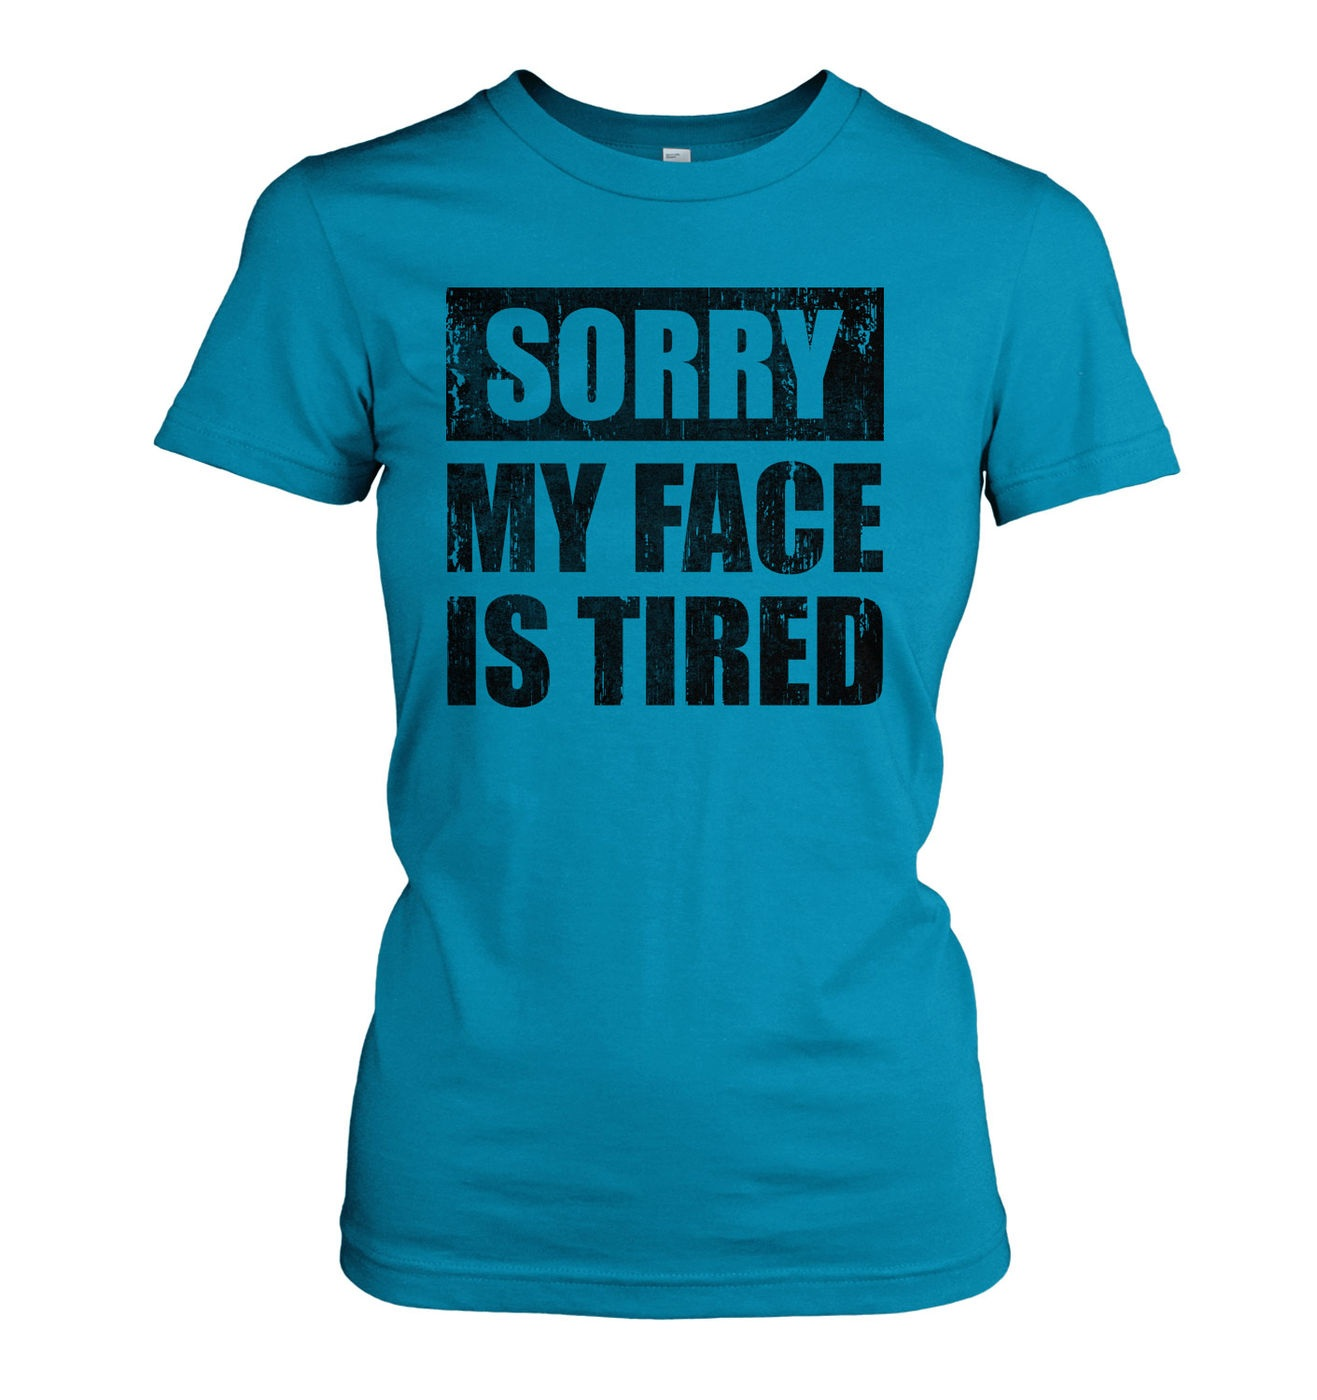 Sorry My Face Is Tired women's t-shirt by Something Geeky